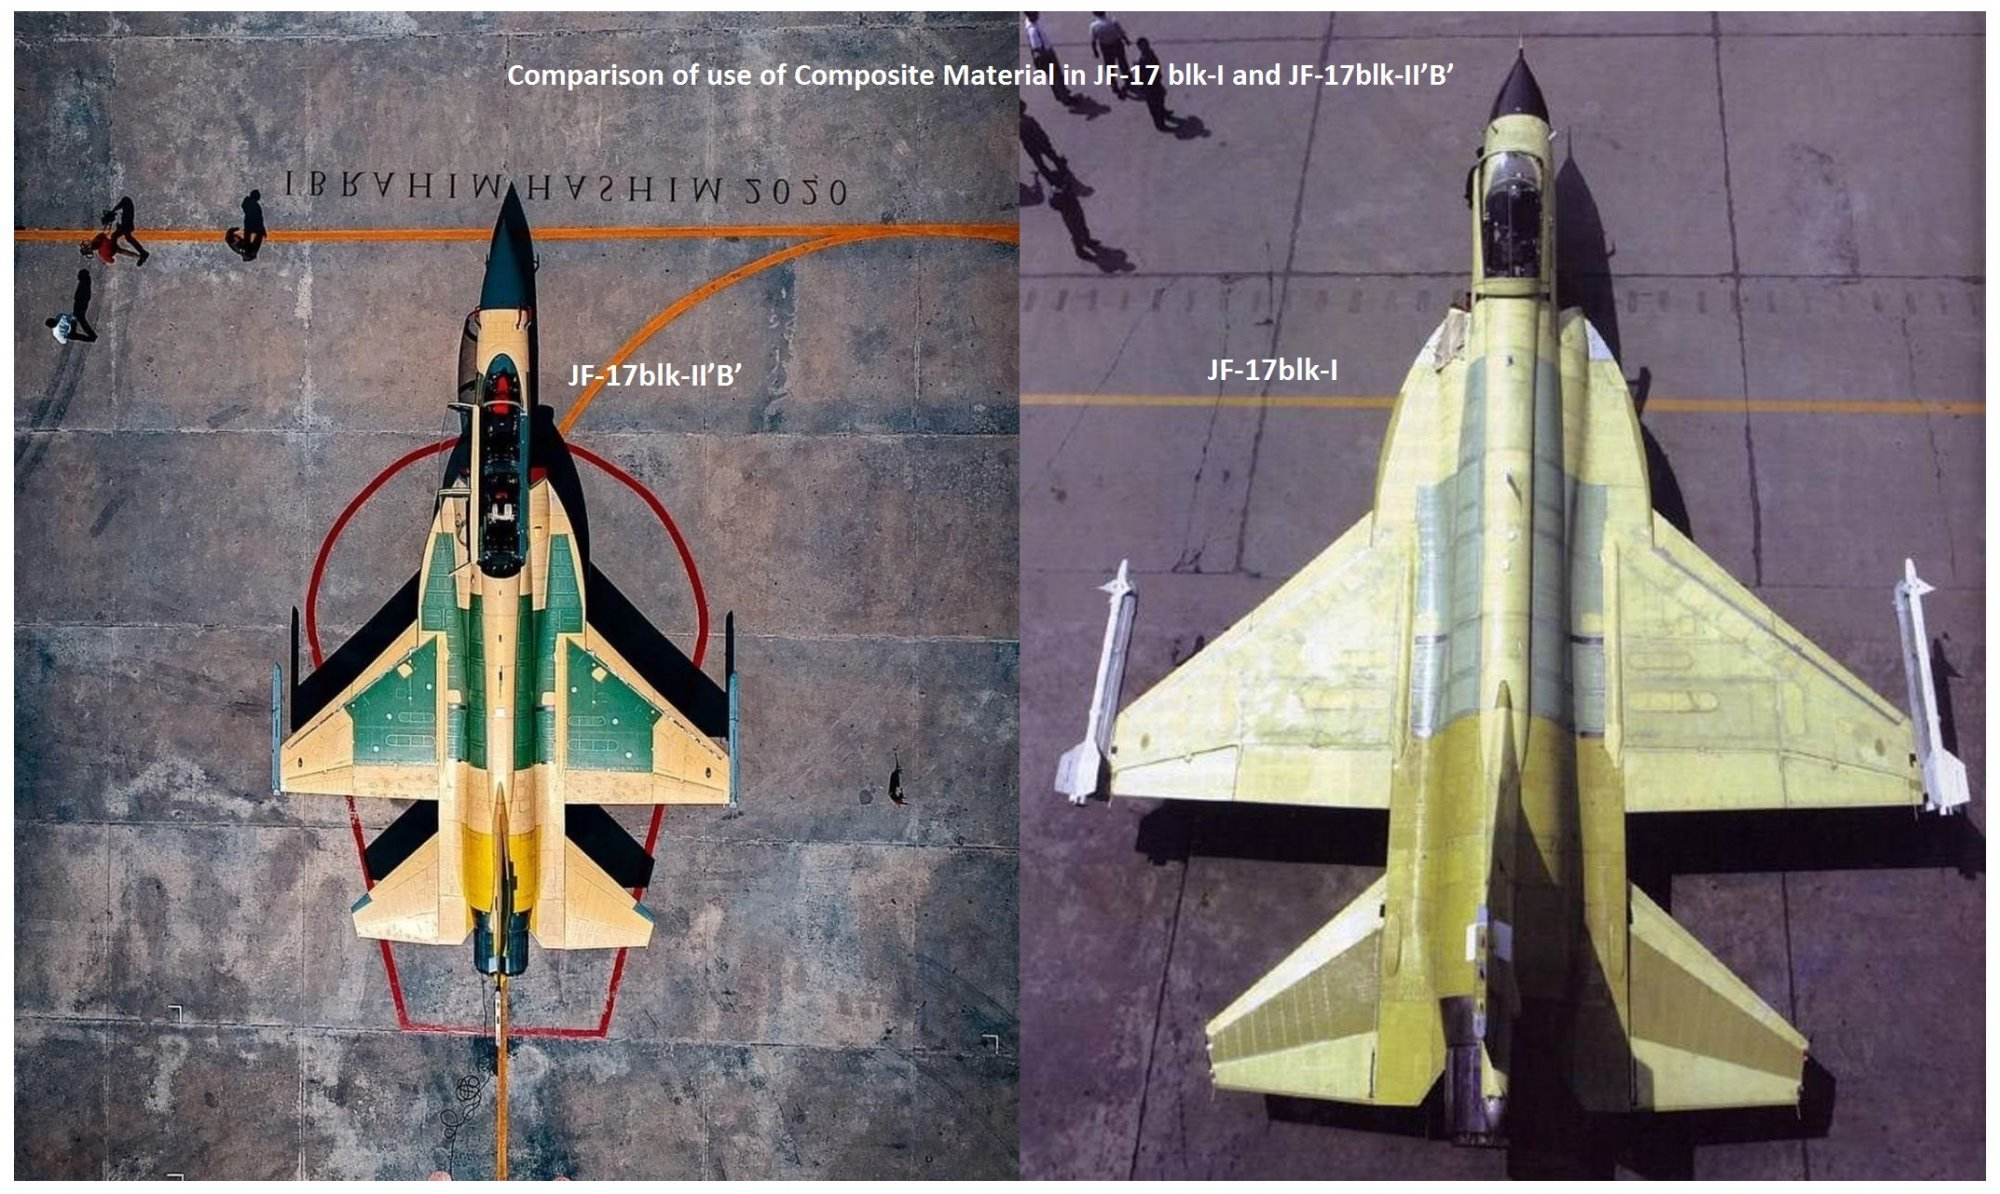 Comparison of use of Composite Material in JF-17 blk-I and JF-17blk-IIB.jpg